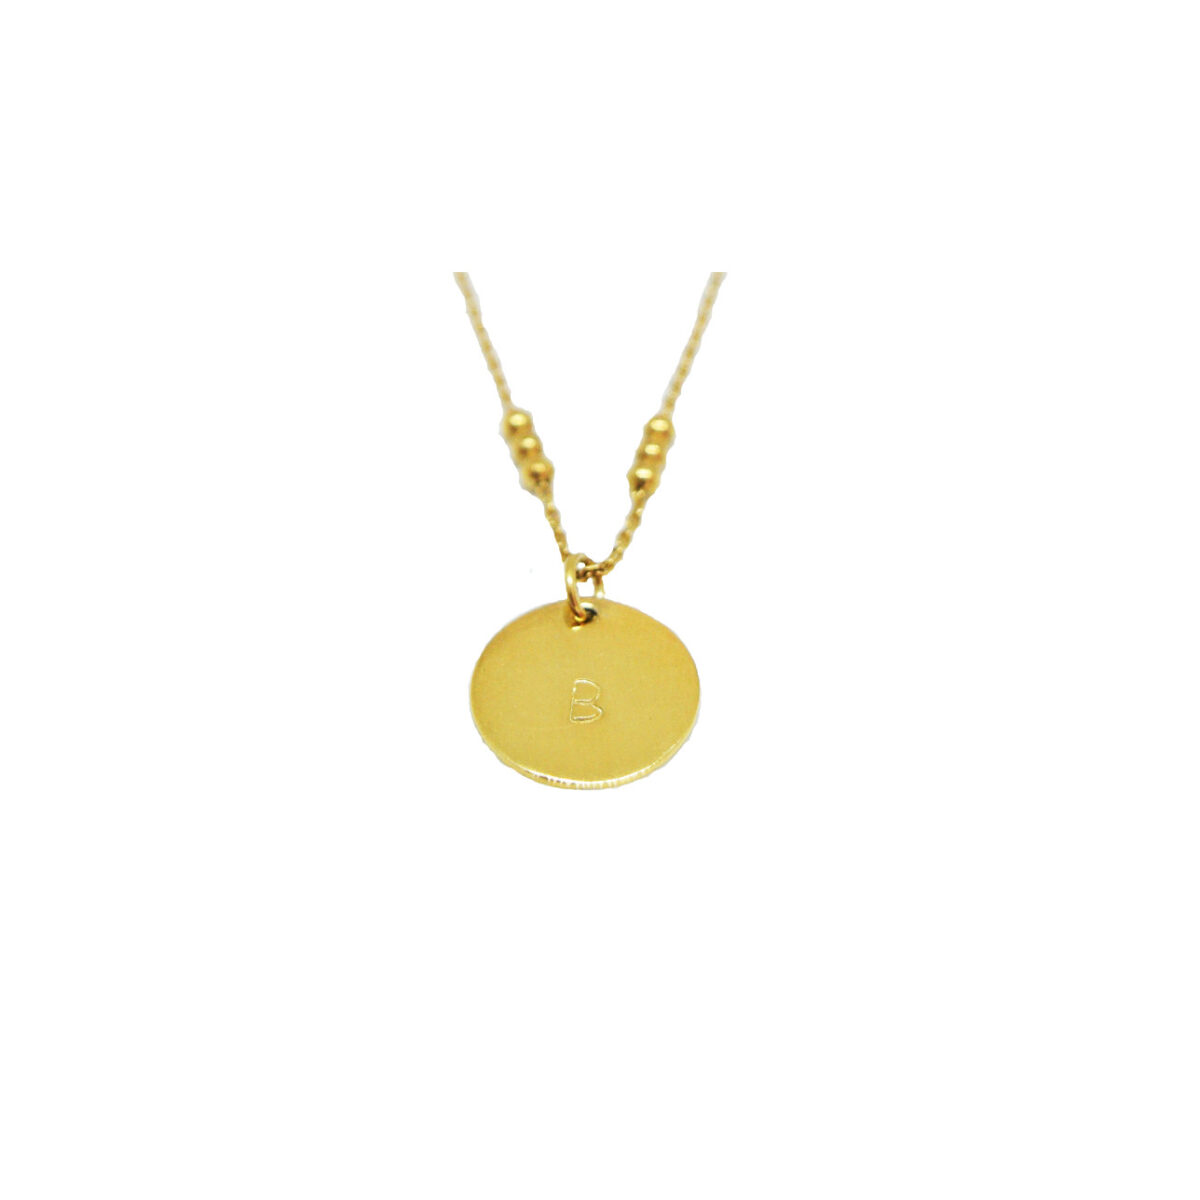 Tell me your initial II gold plated necklace